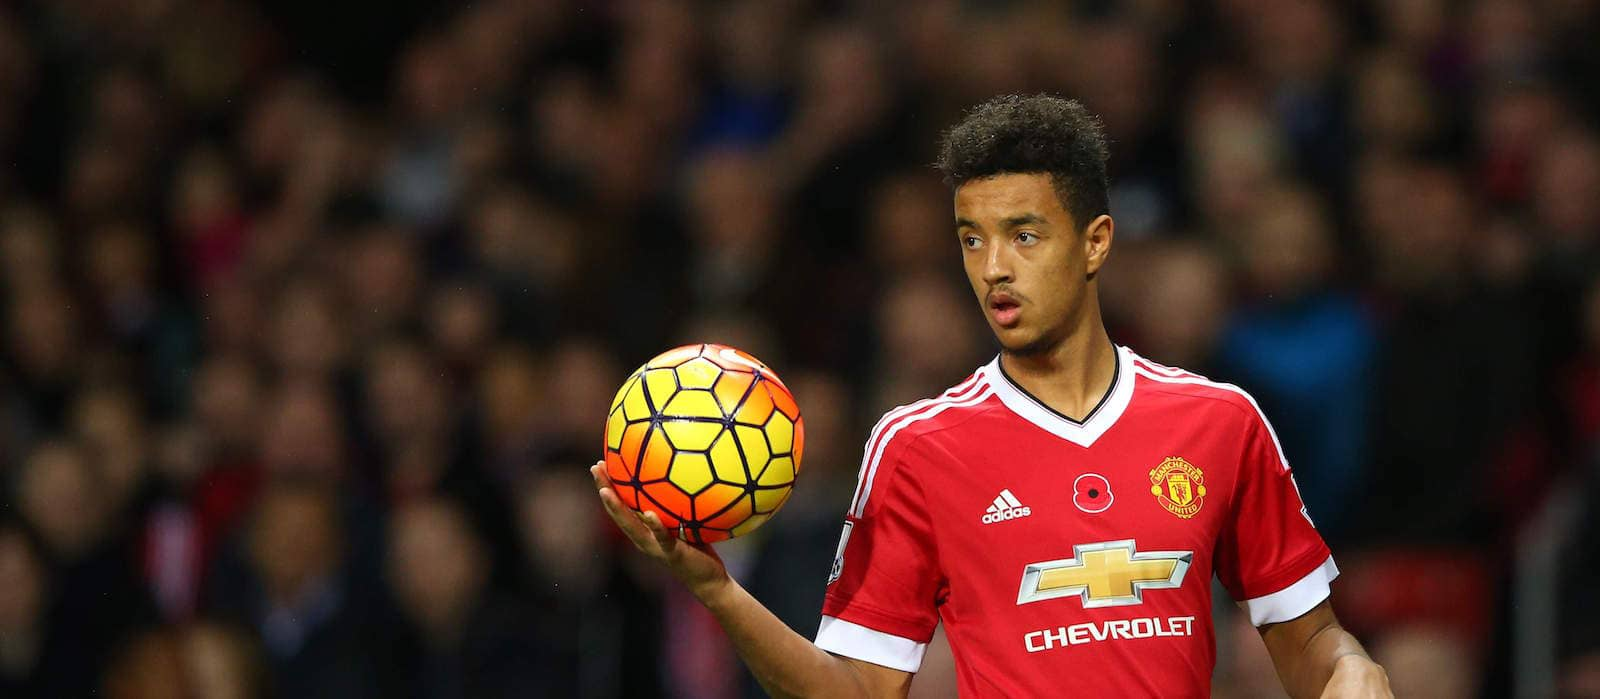 Cameron Borthwick-Jackson set to leave Man United on loan – report